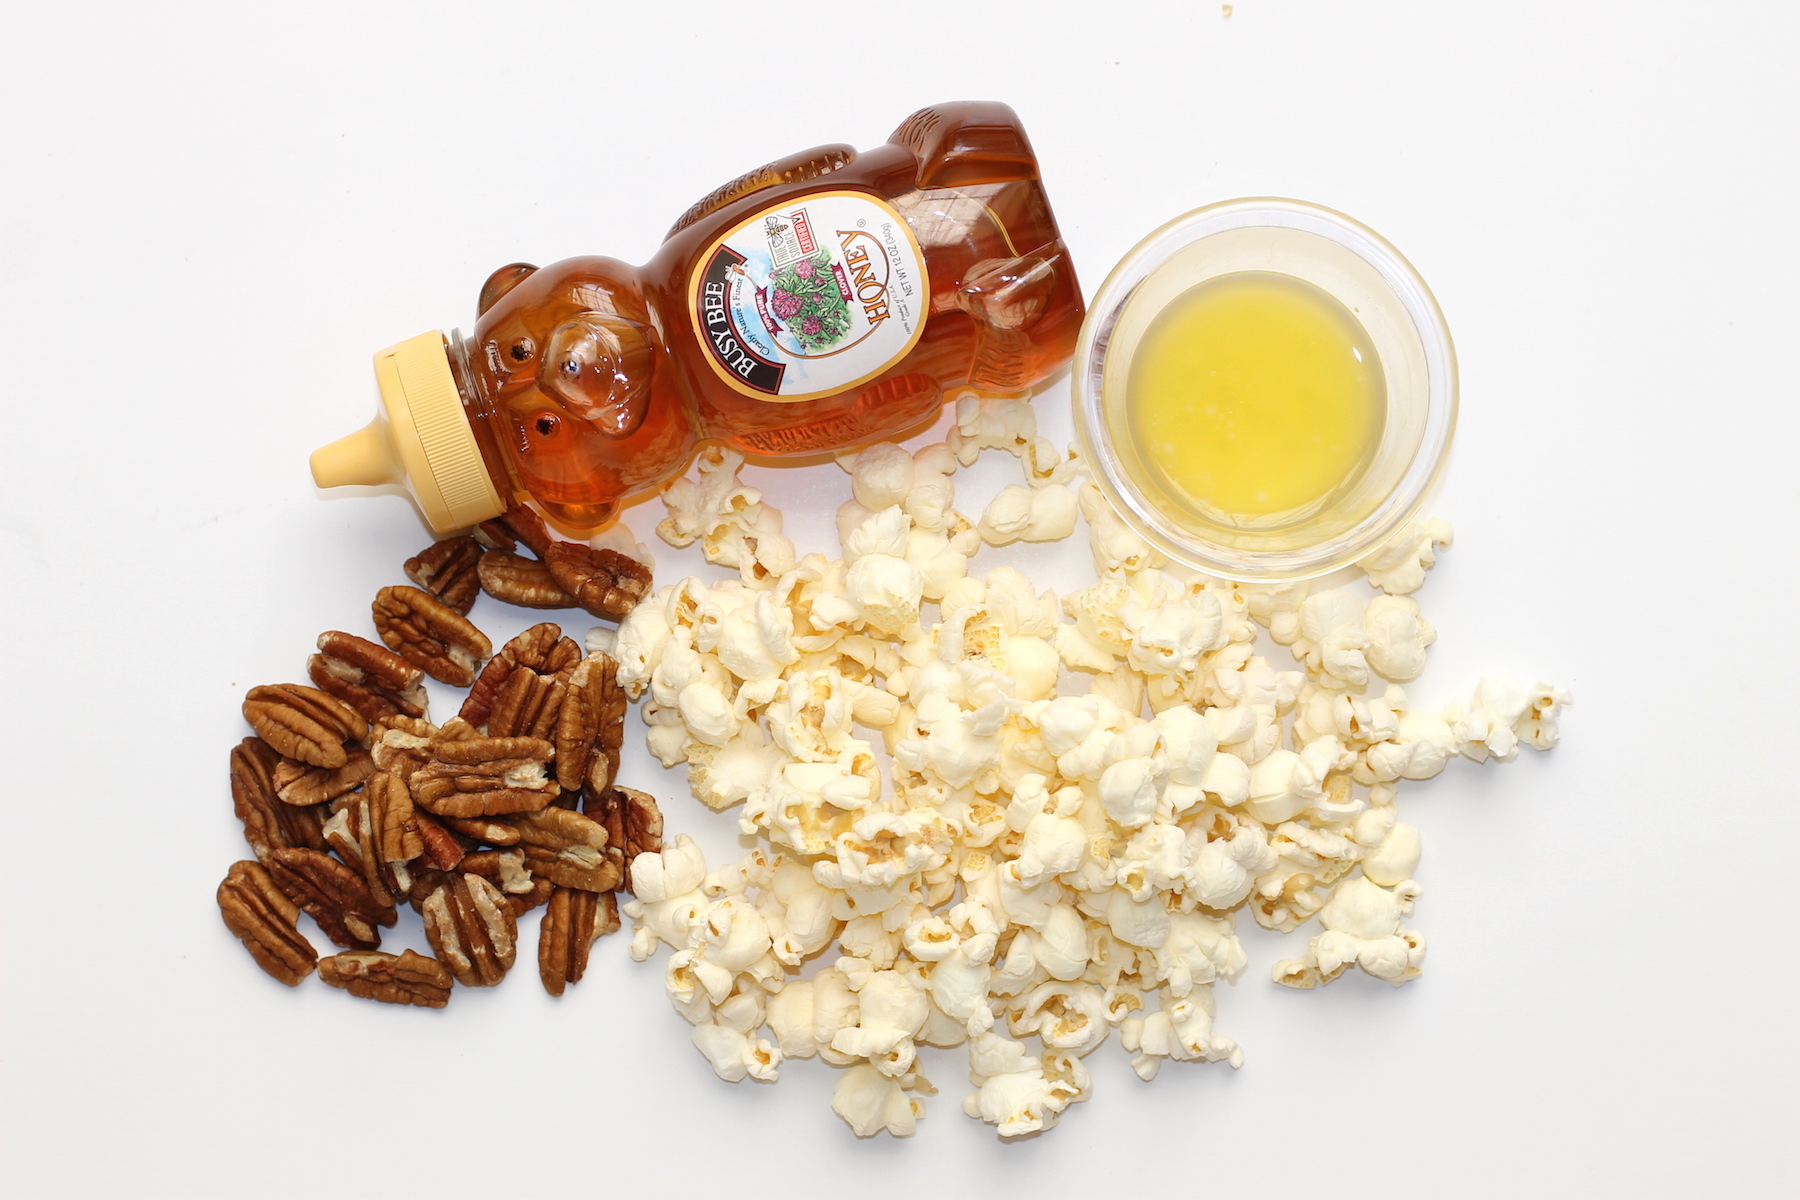 2-ingredientsfathers-day-popcorn-recipes-handmadebykelly.com-onlinelabels.com_